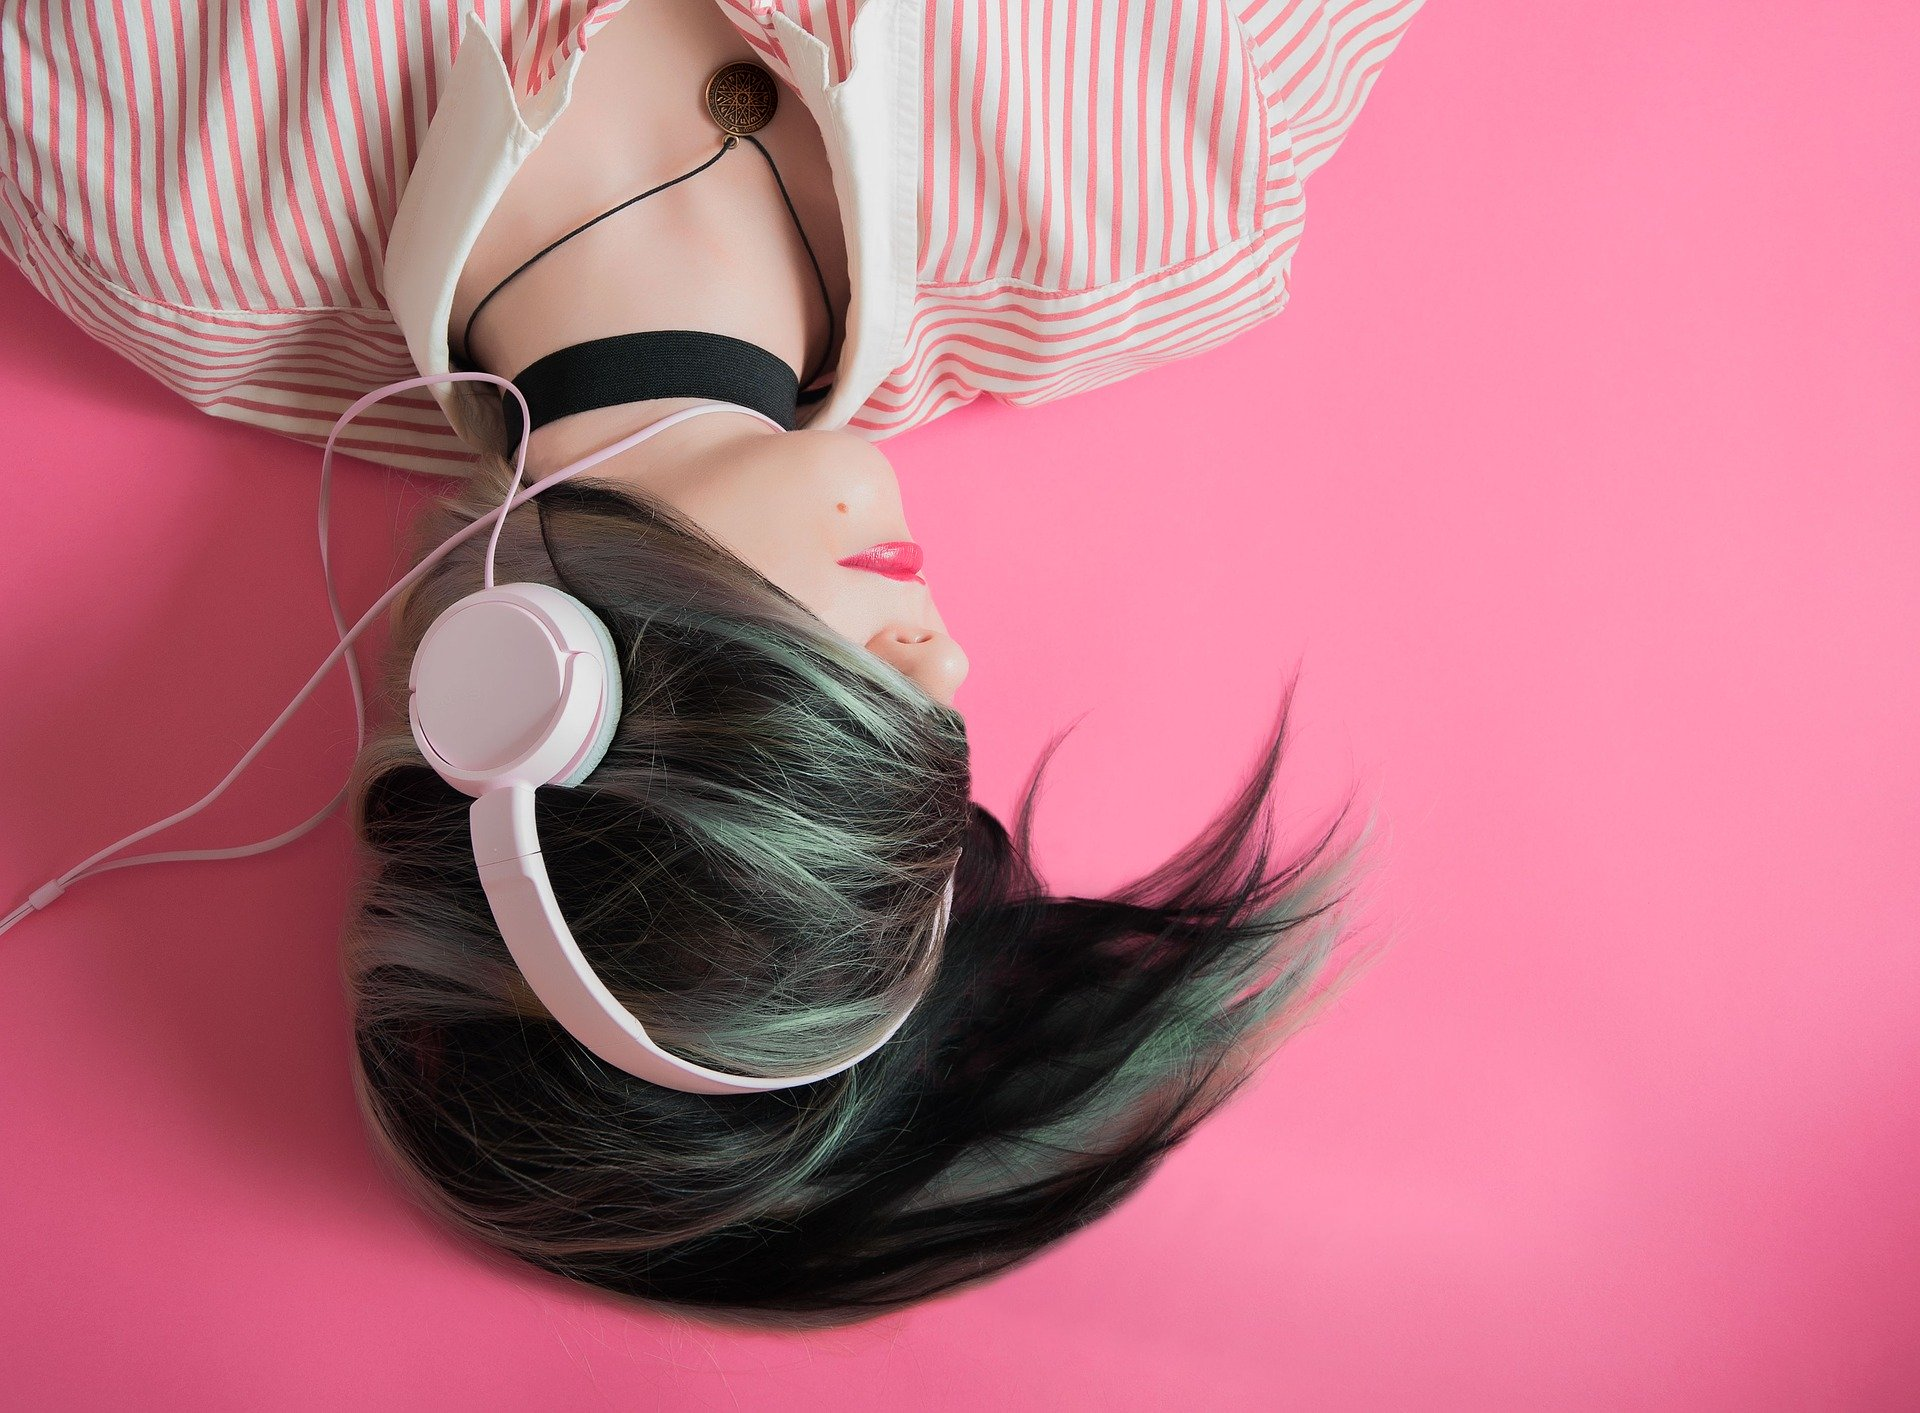 Amazon Music Has Over 55 Million Listeners, and It's Growing Fast